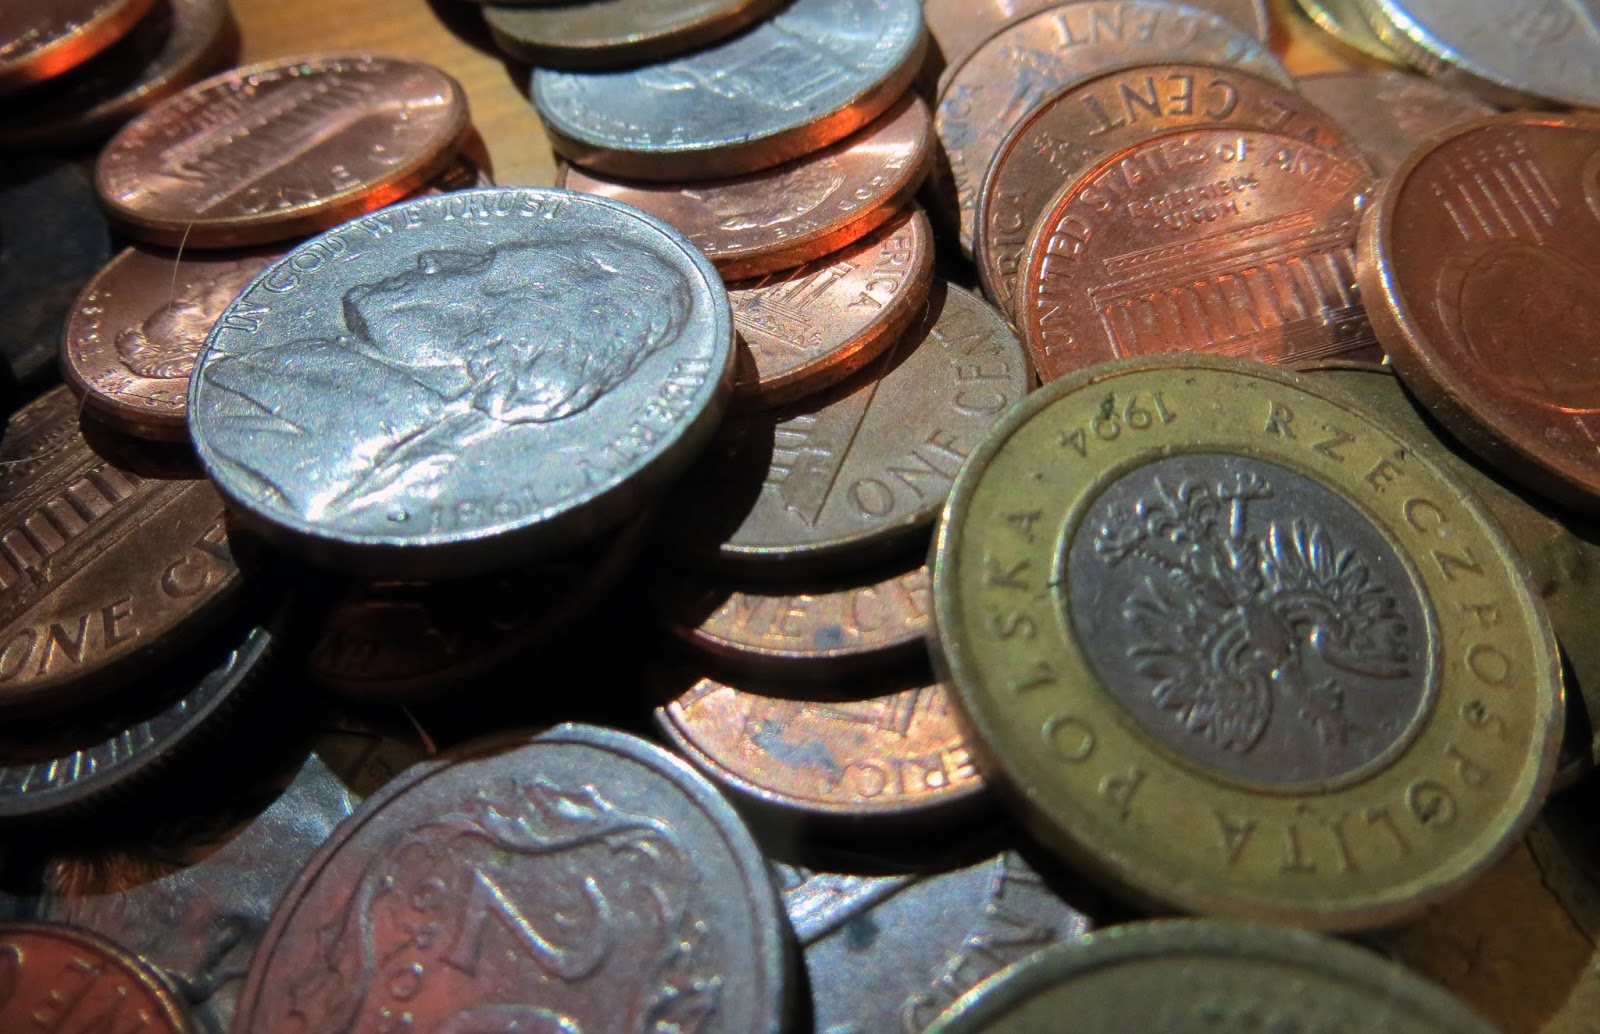 Money, coins, how to save for travelling, how to save for traveling, backpacking, travel, vacation, gap year, sabbatical, quit job and travel, money worries, budgeting, loans, debt,